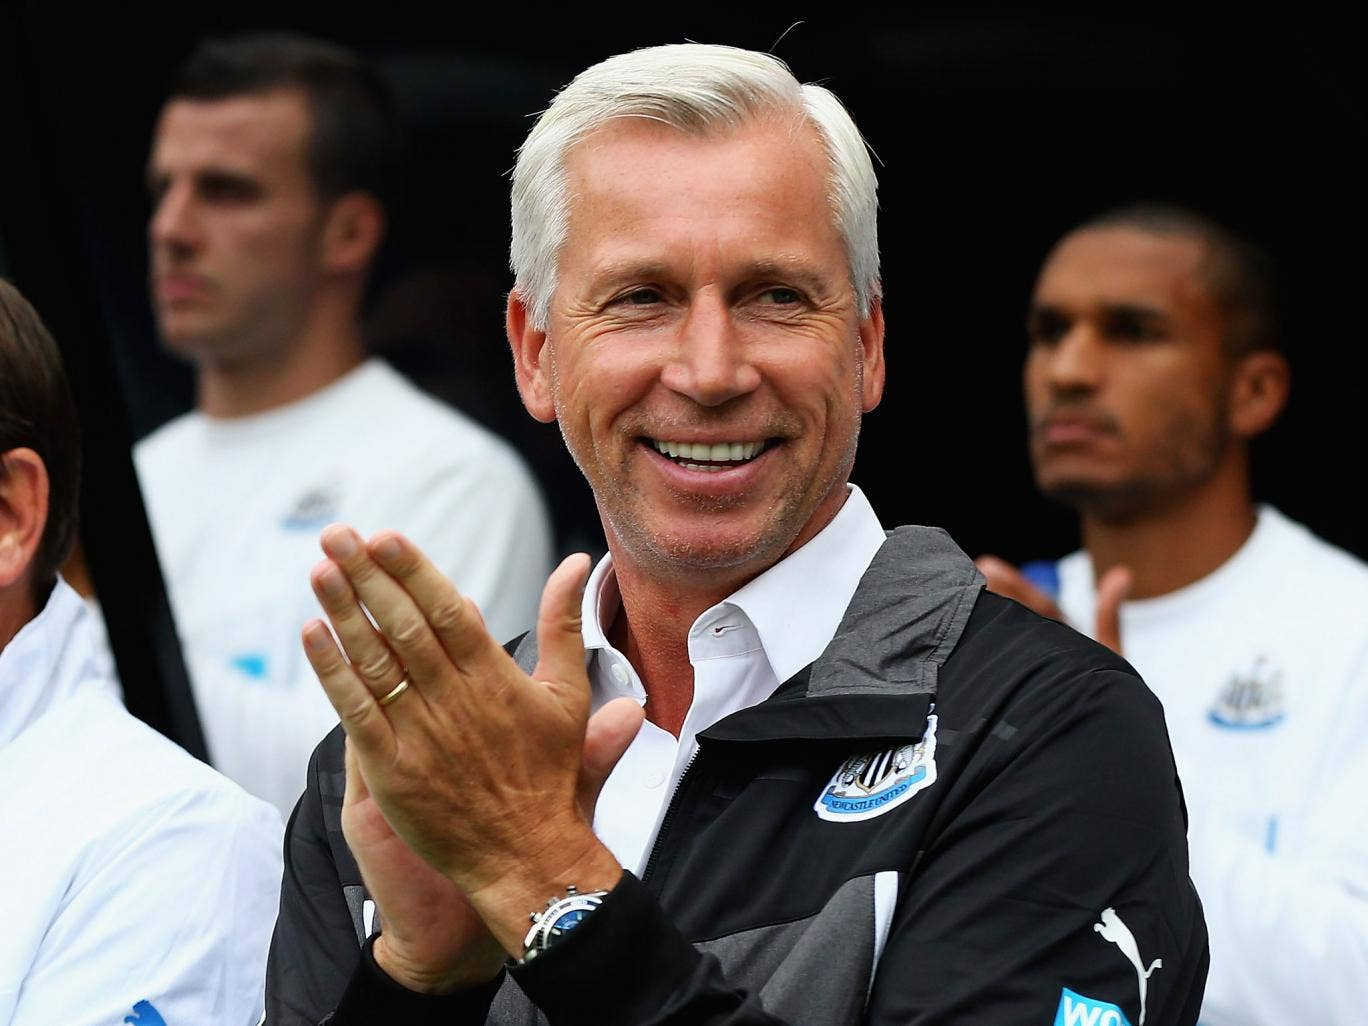 Alan Pardew says the Newcastle players return 'fitter than ever'